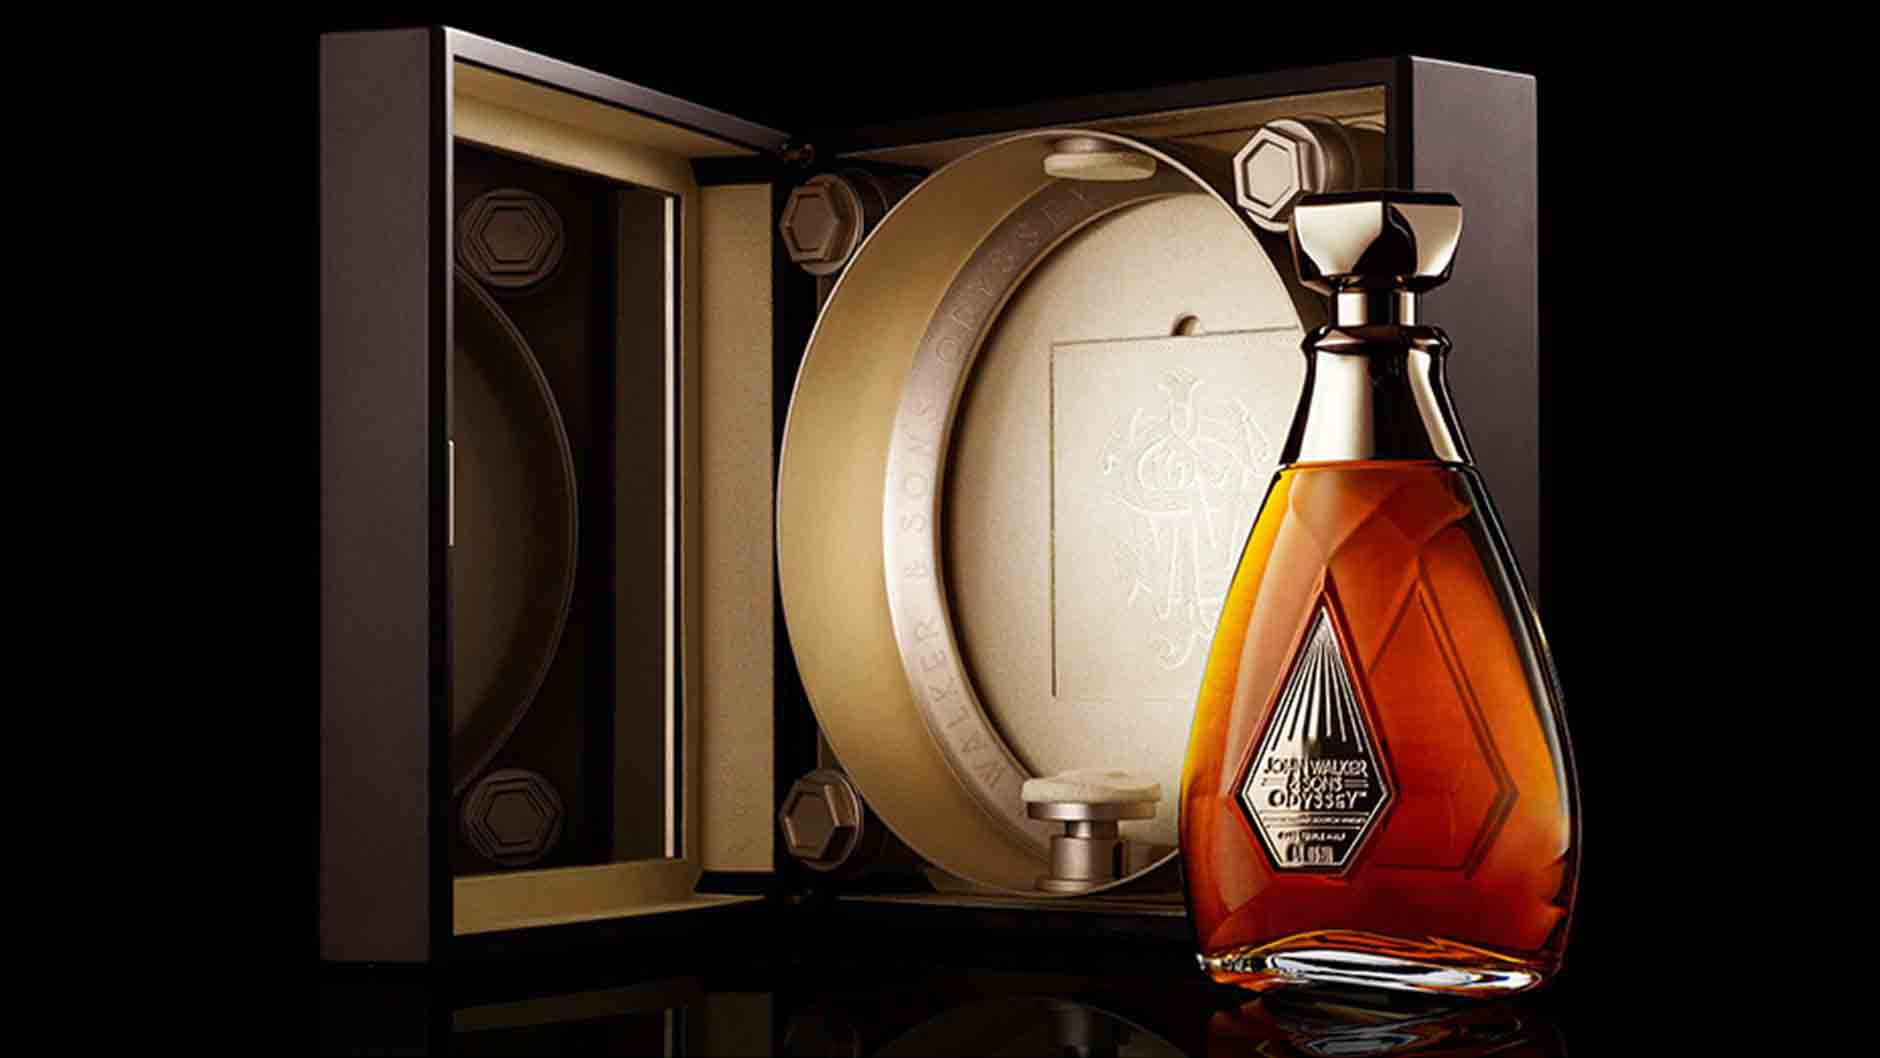 Gift pack of John Walker & Sons Odyssey whisky